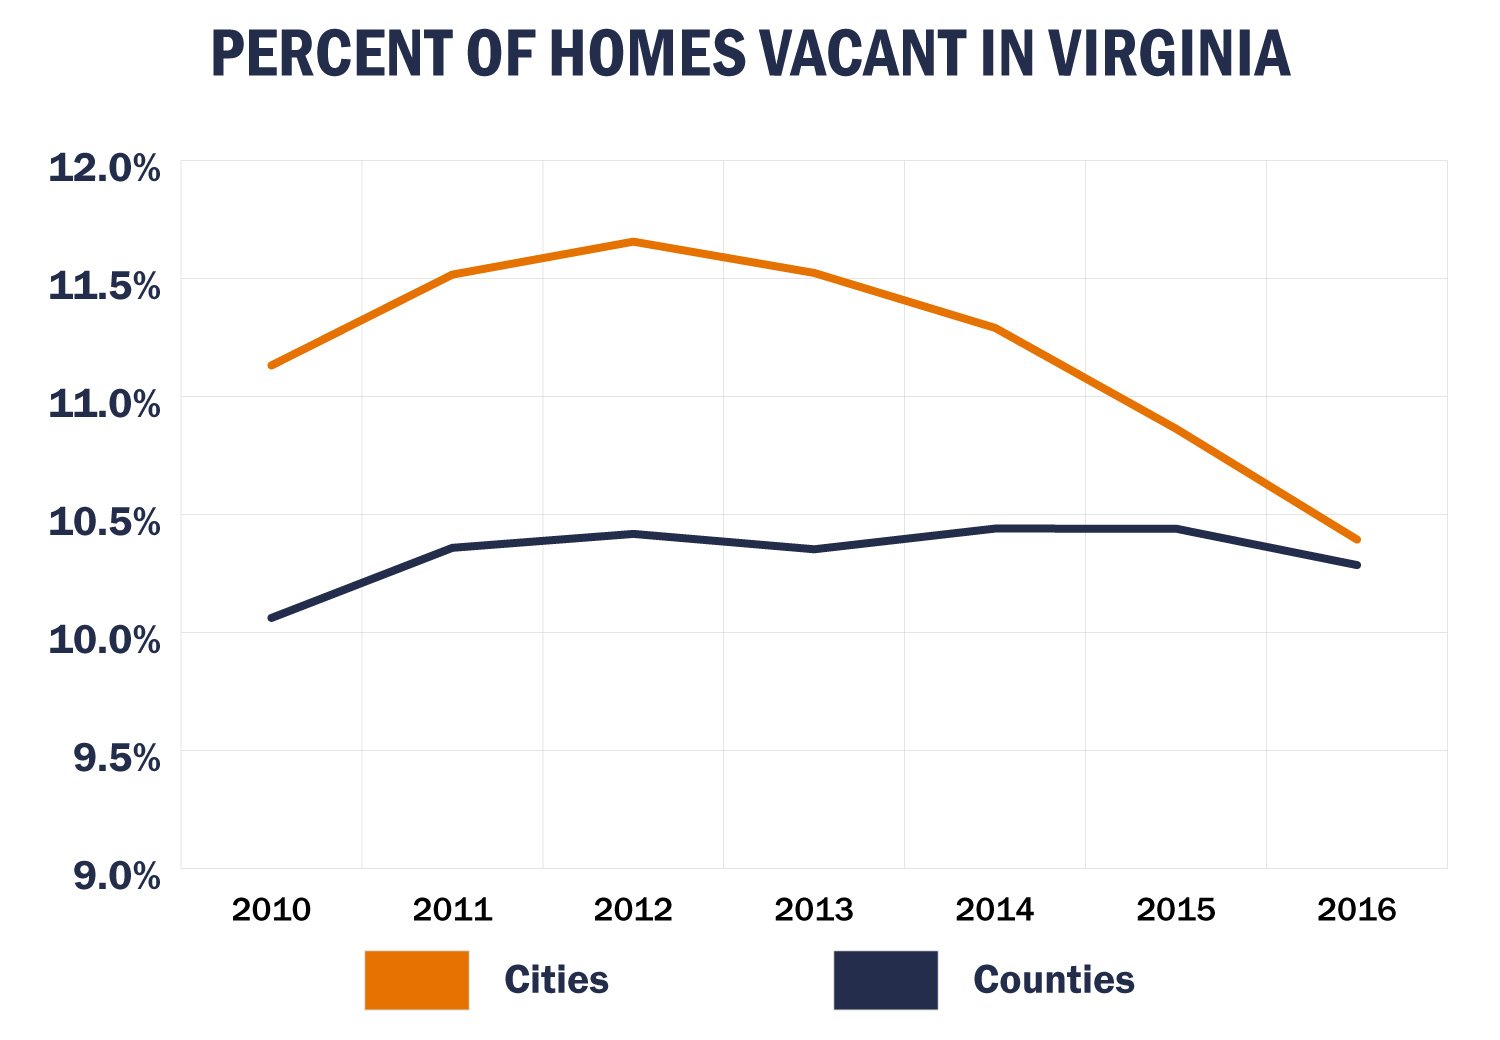 Consolidated city-counties are not included in city vacancy rates.